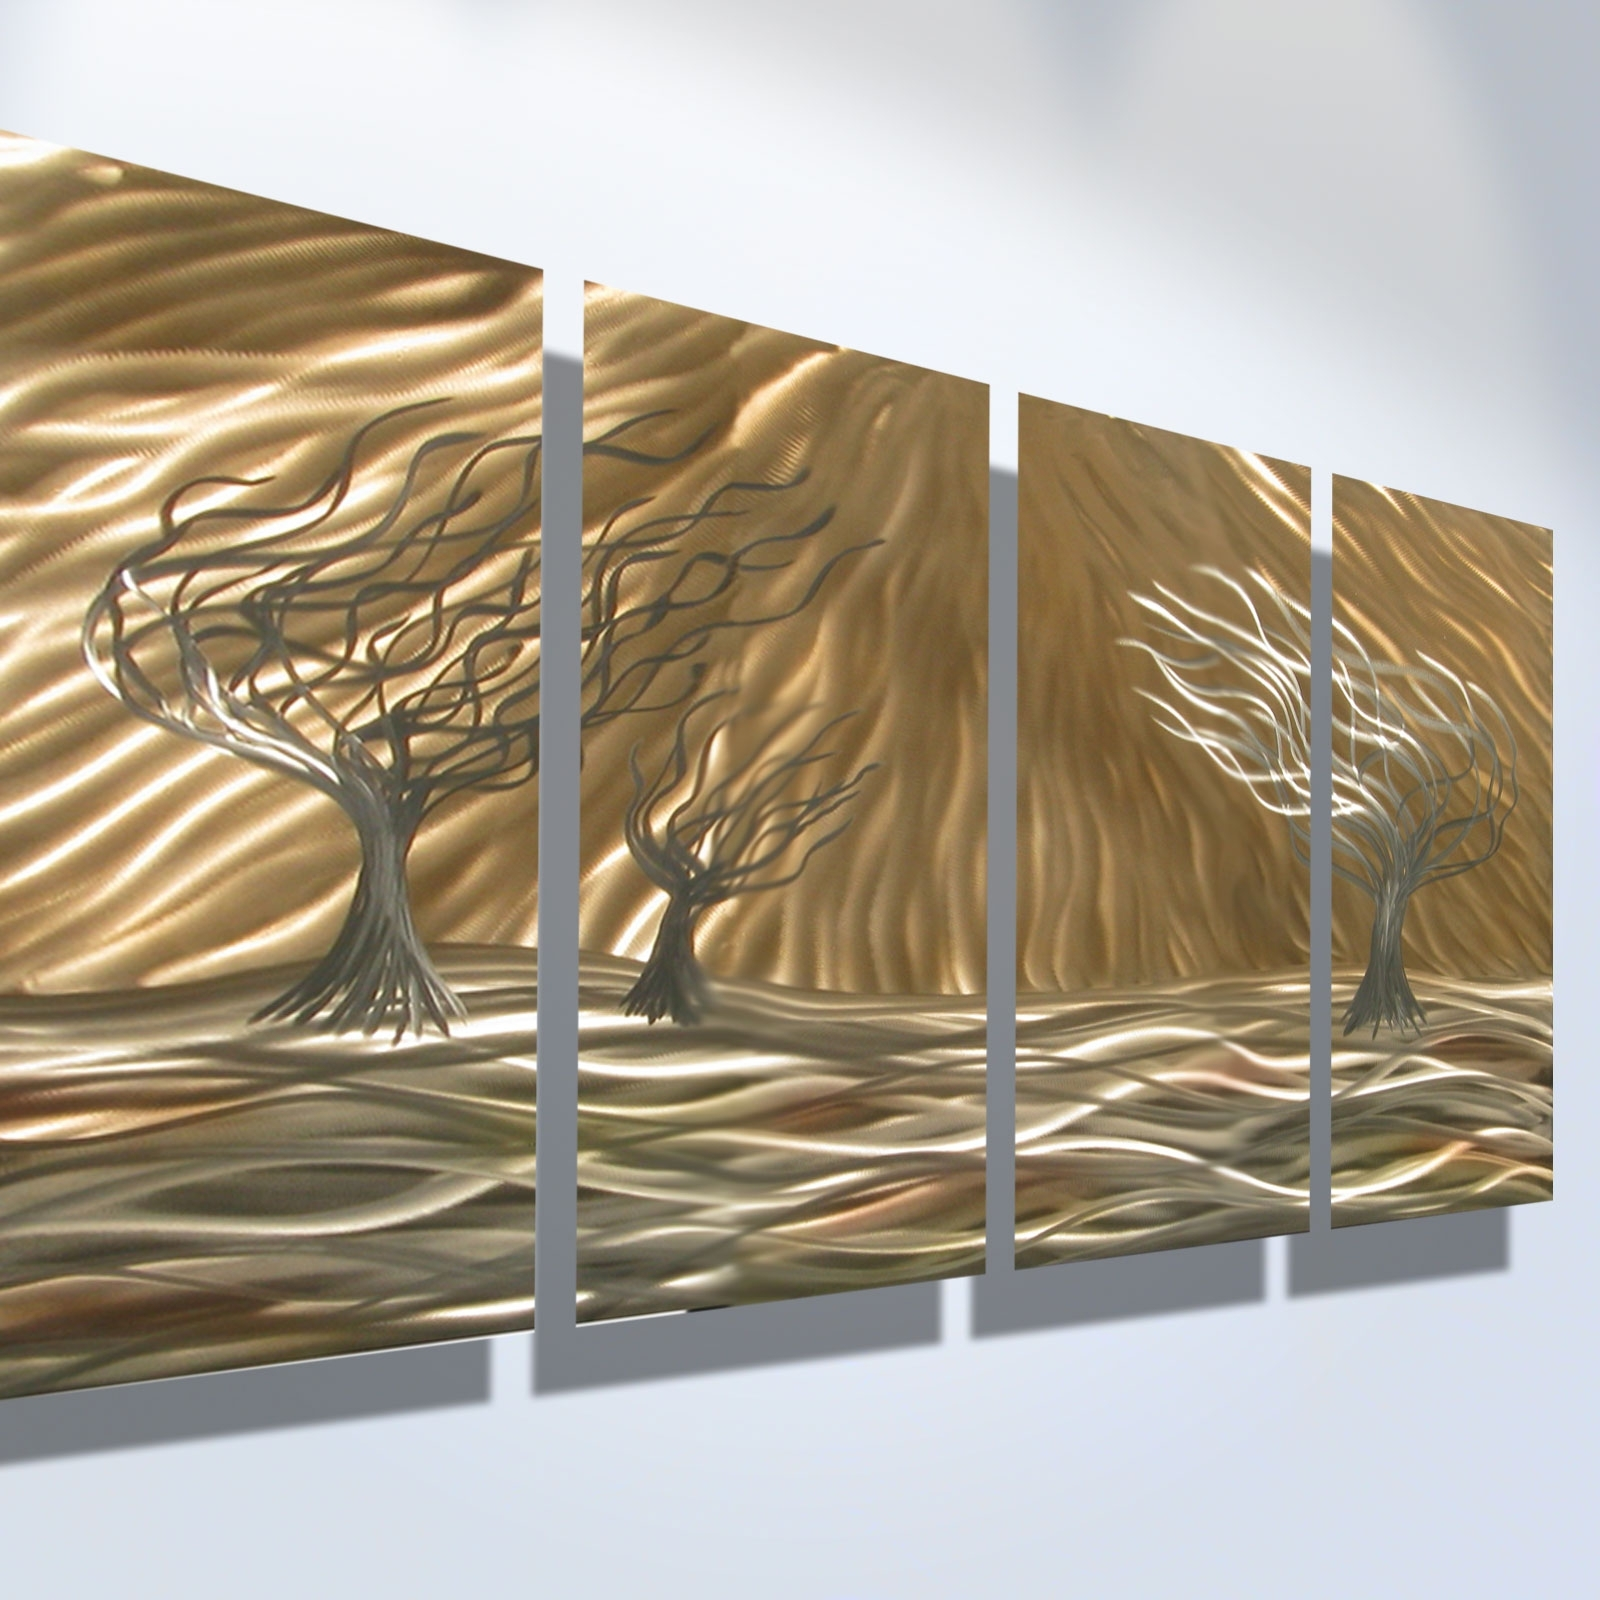 3 Trees 4 Panel – Abstract Metal Wall Art Contemporary Modern Throughout Most Recent Abstract Metal Wall Art (View 1 of 15)